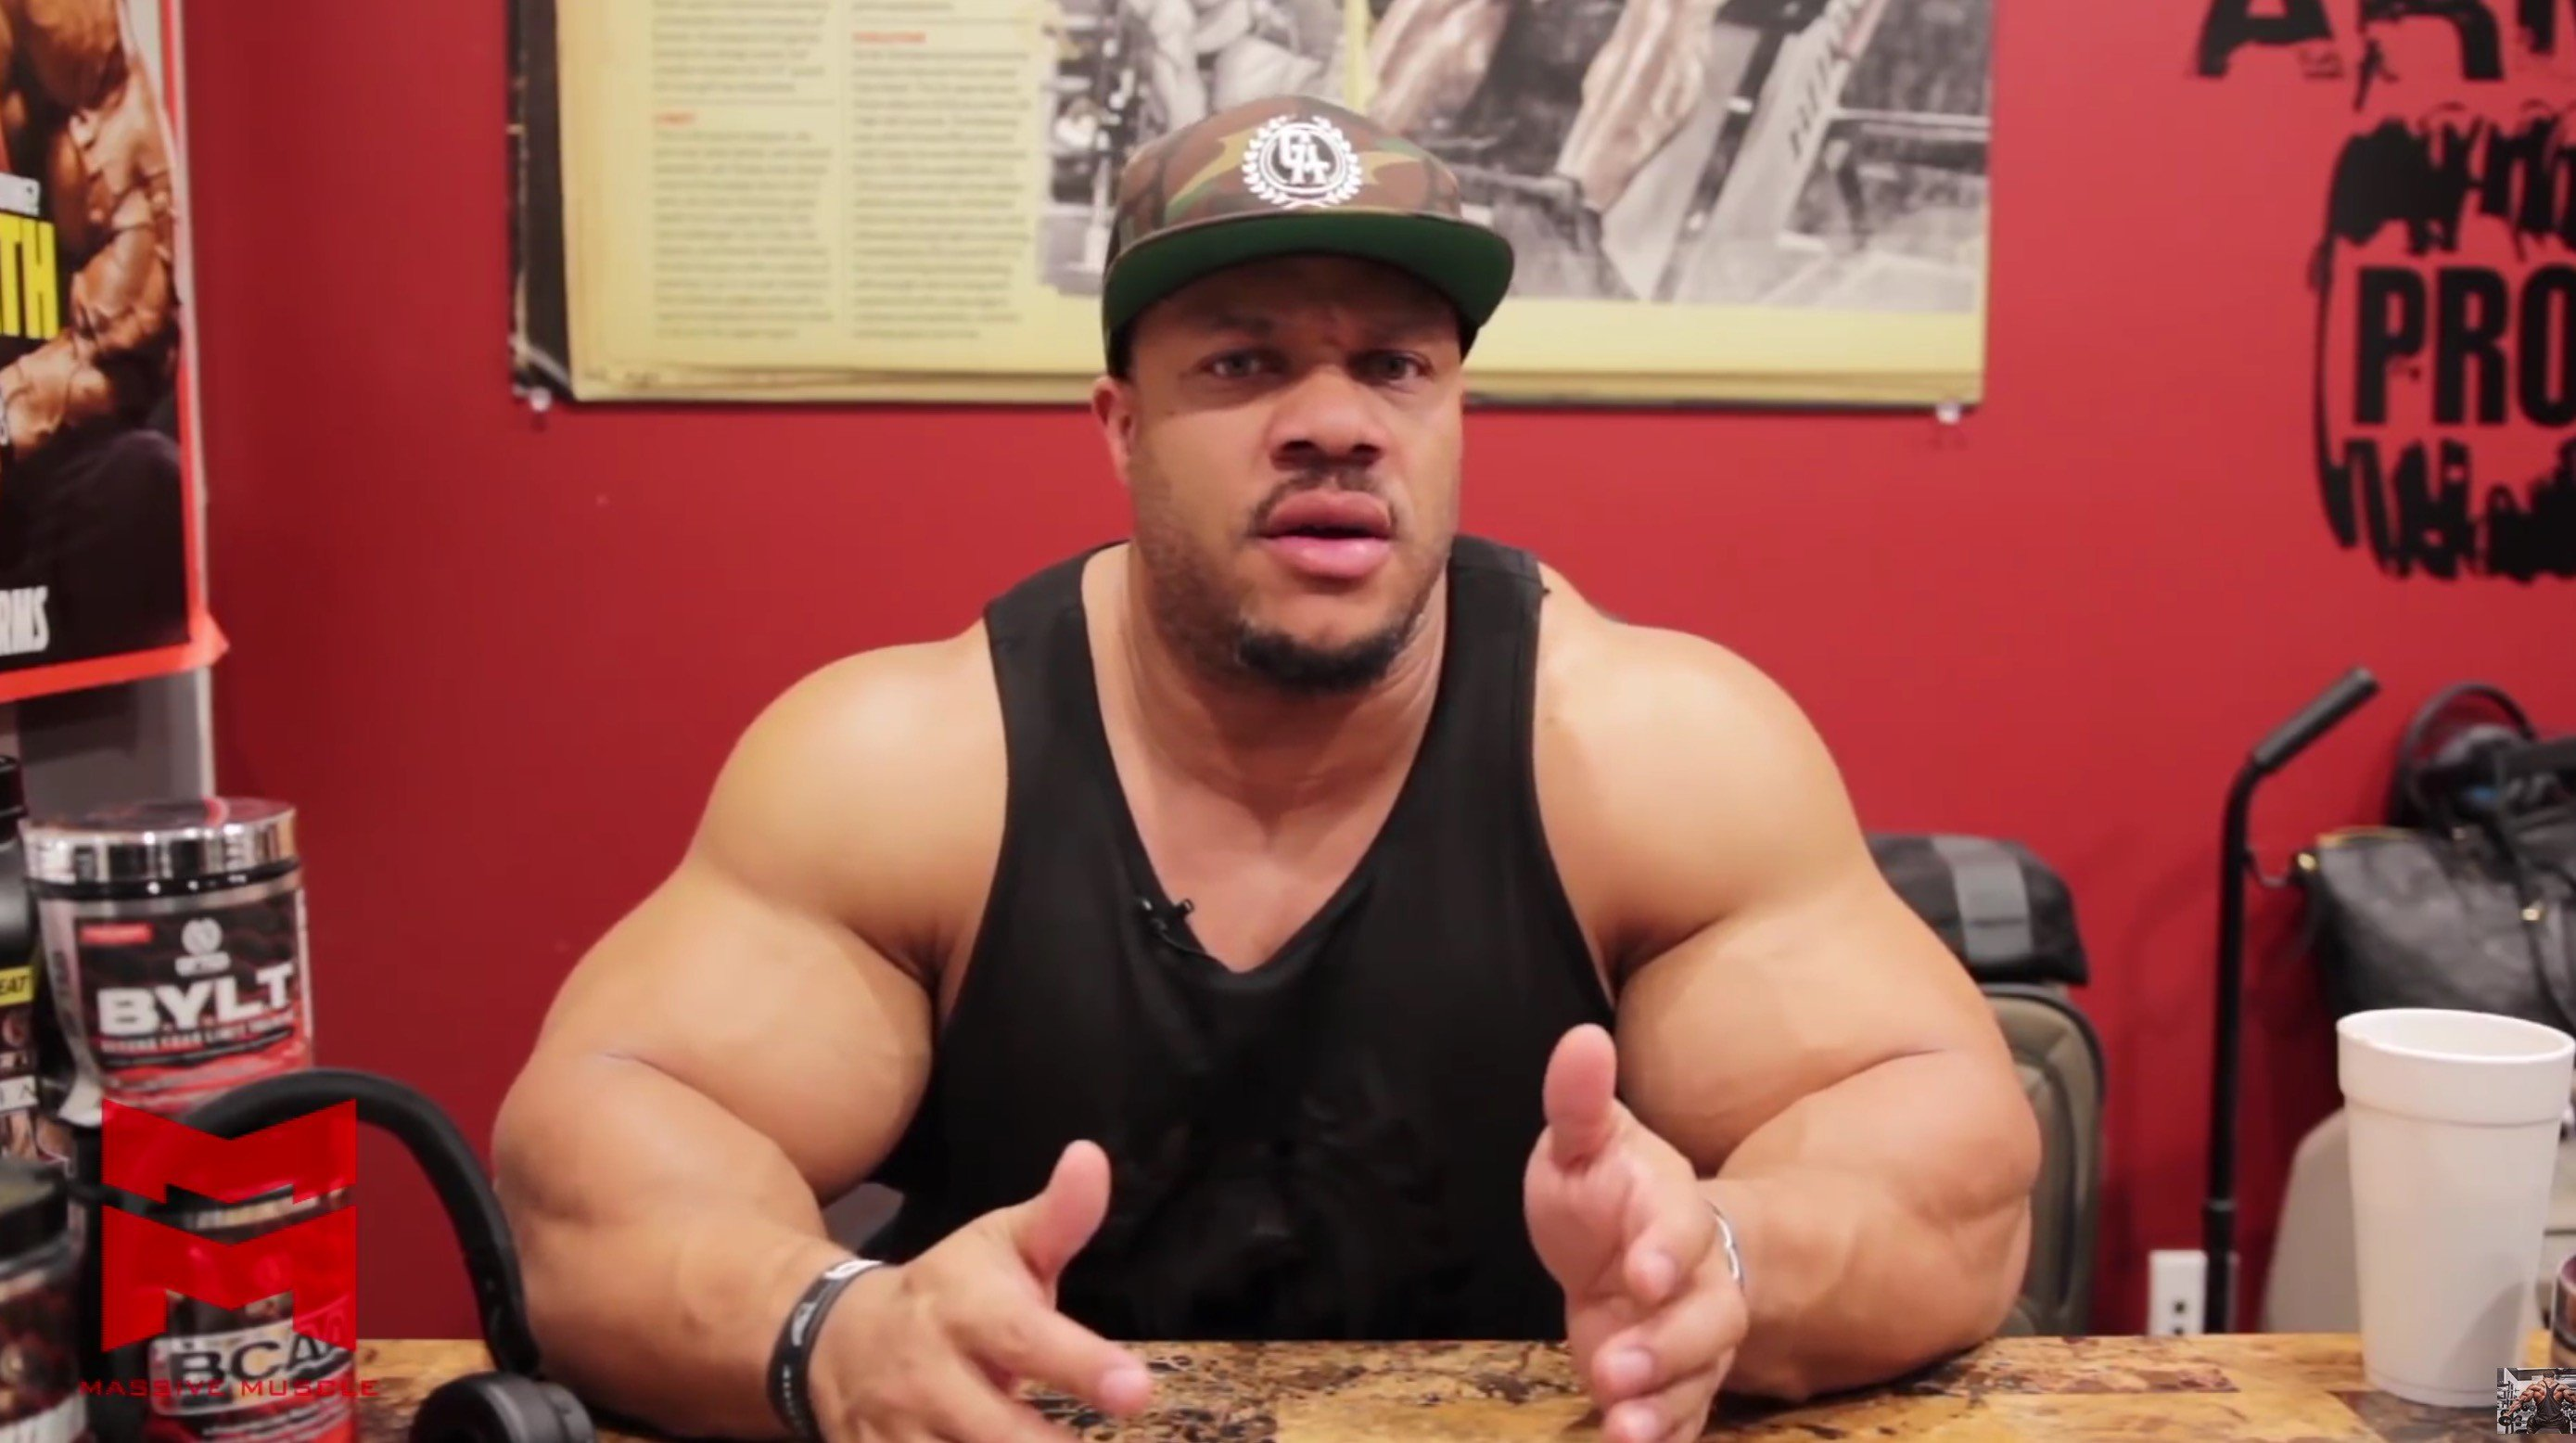 Do you agree with Phil Heath regarding The Classic Bodybuilding Division?